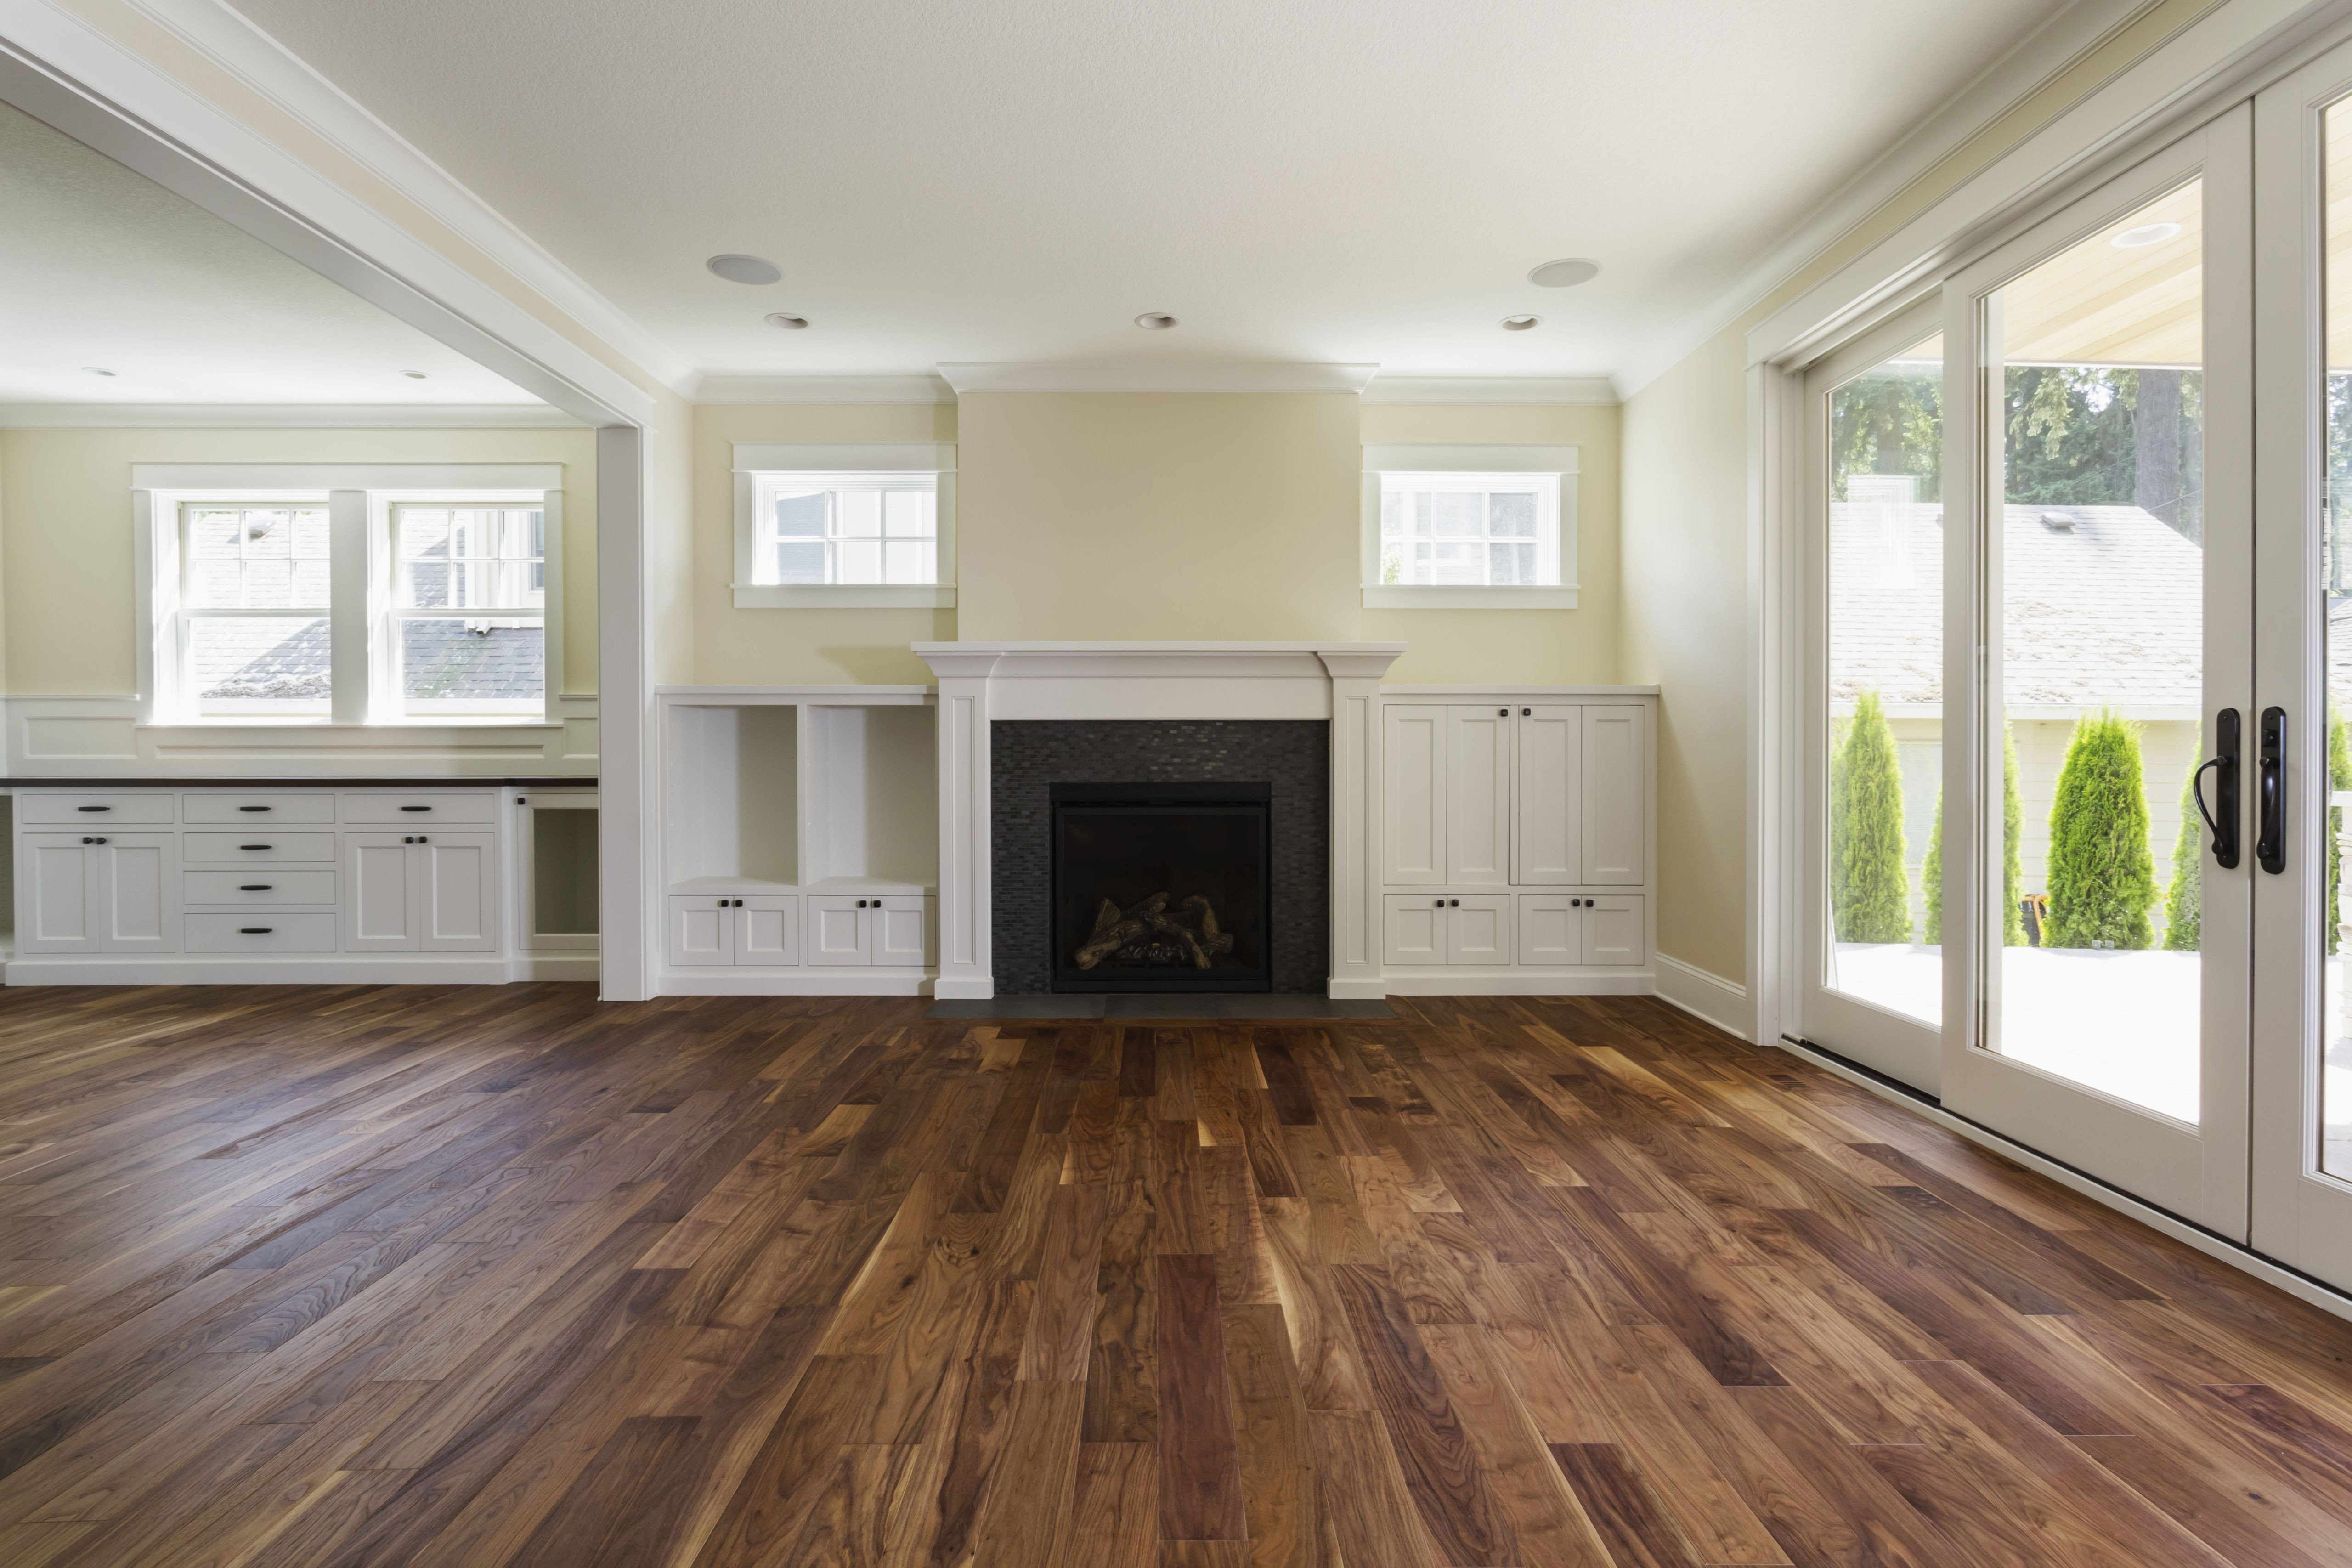 hardwood floor cleaner that doesn t leave residue of the pros and cons of prefinished hardwood flooring within fireplace and built in shelves in living room 482143011 57bef8e33df78cc16e035397